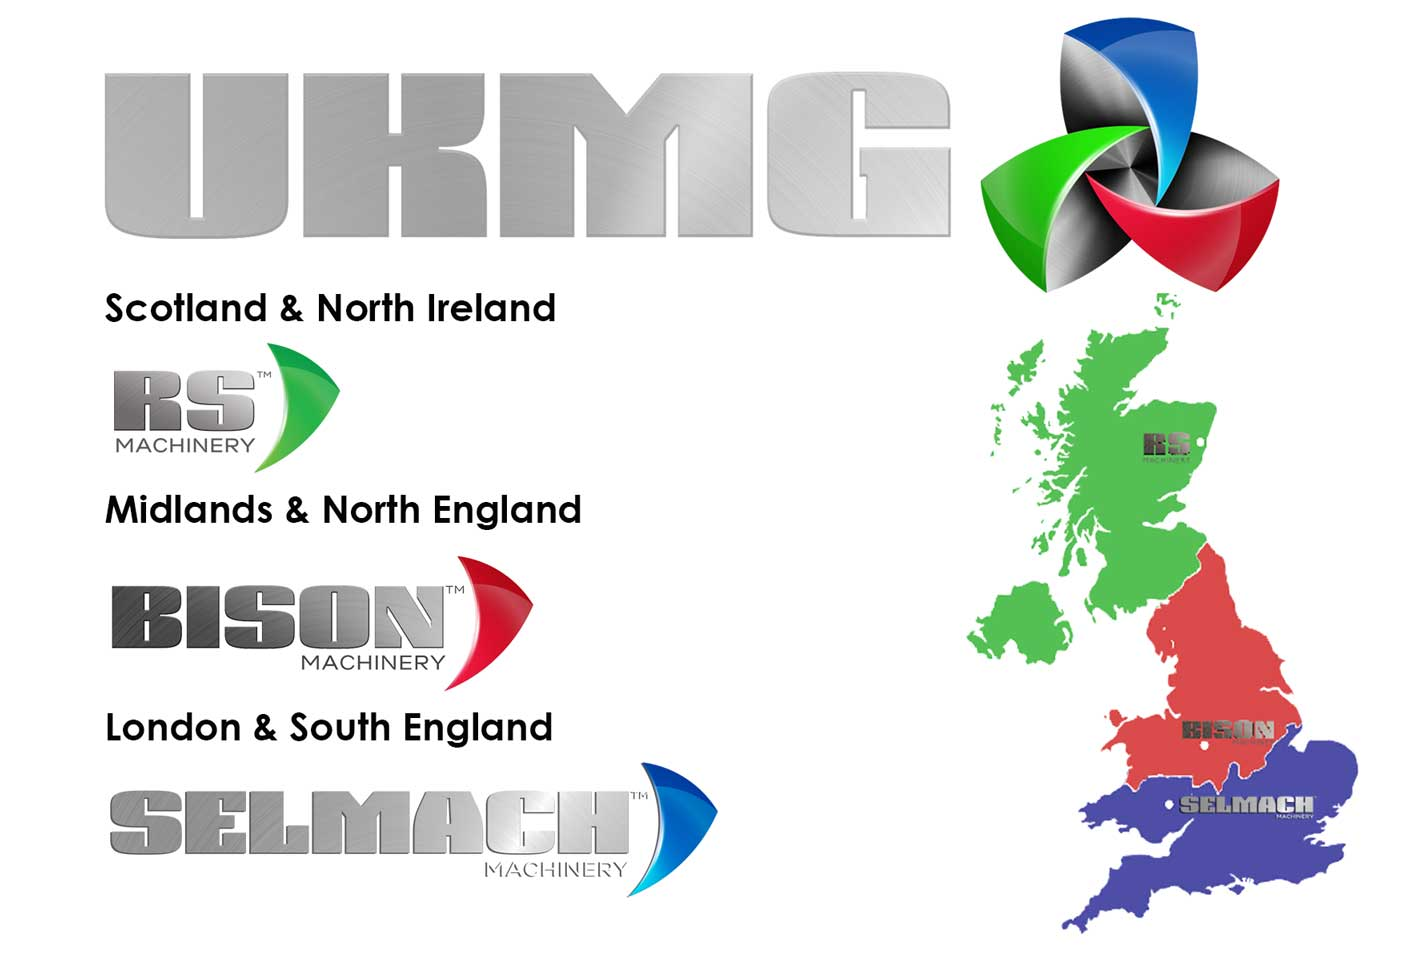 Selmach Machinery is partnered with the UK Machinery Group